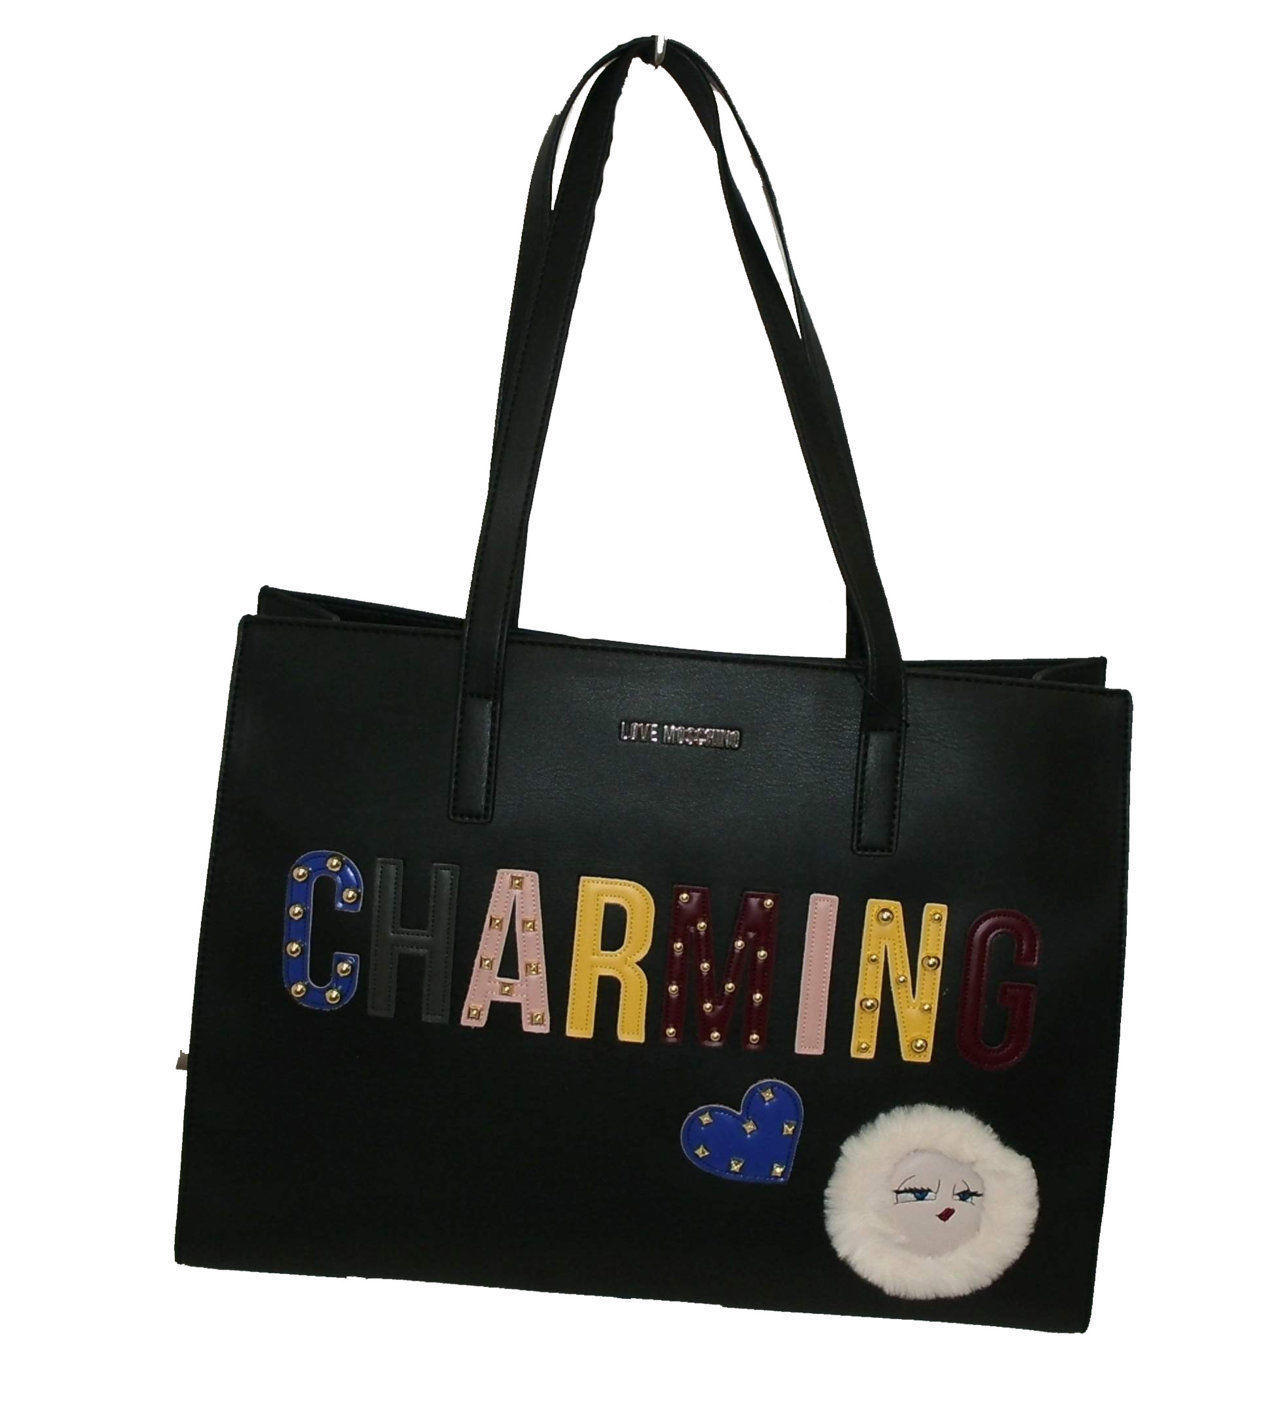 Borsa Shopping Bags Love Moschino Donna and 50 similar items d47bf0a856b